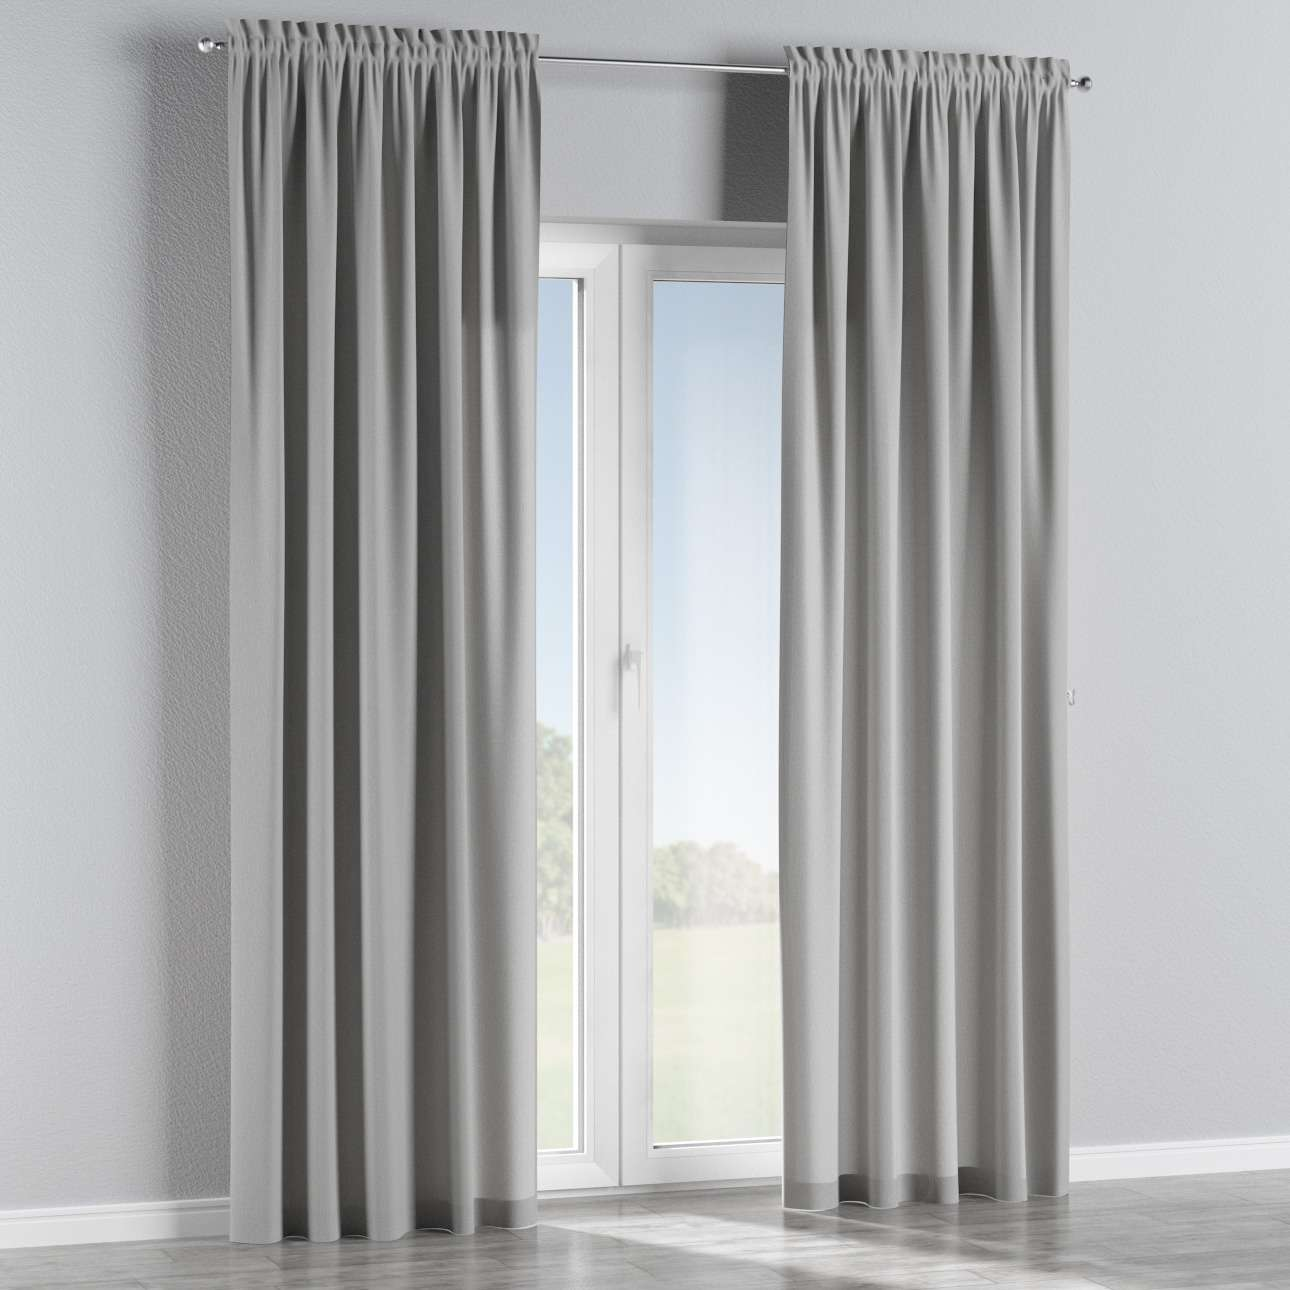 Slot and frill curtains 130 × 260 cm (51 × 102 inch) in collection Chenille, fabric: 702-23